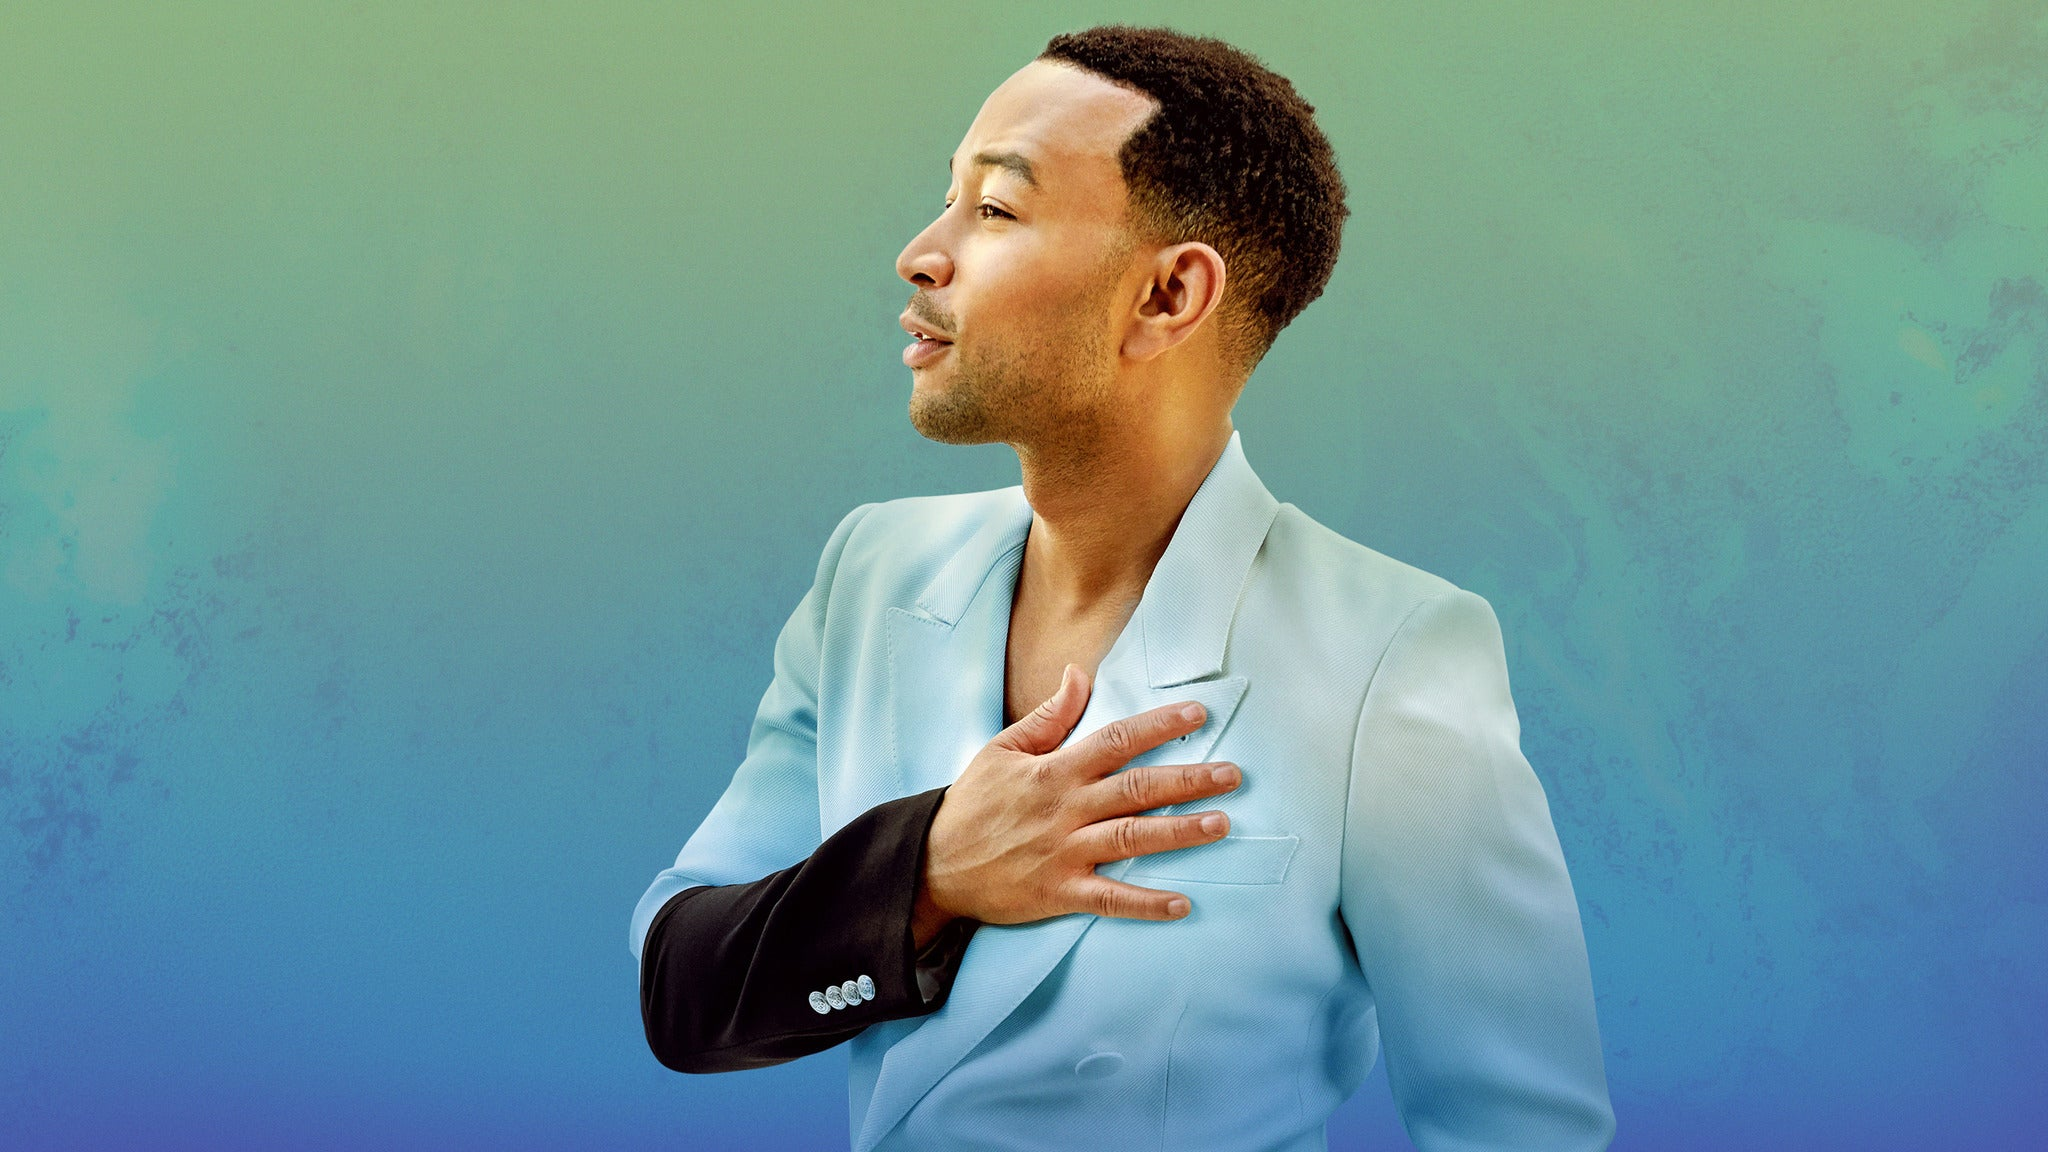 John Legend Christmas Tour Chicago 2020 John Legend Tickets, 2020 2021 Concert Tour Dates | Ticketmaster